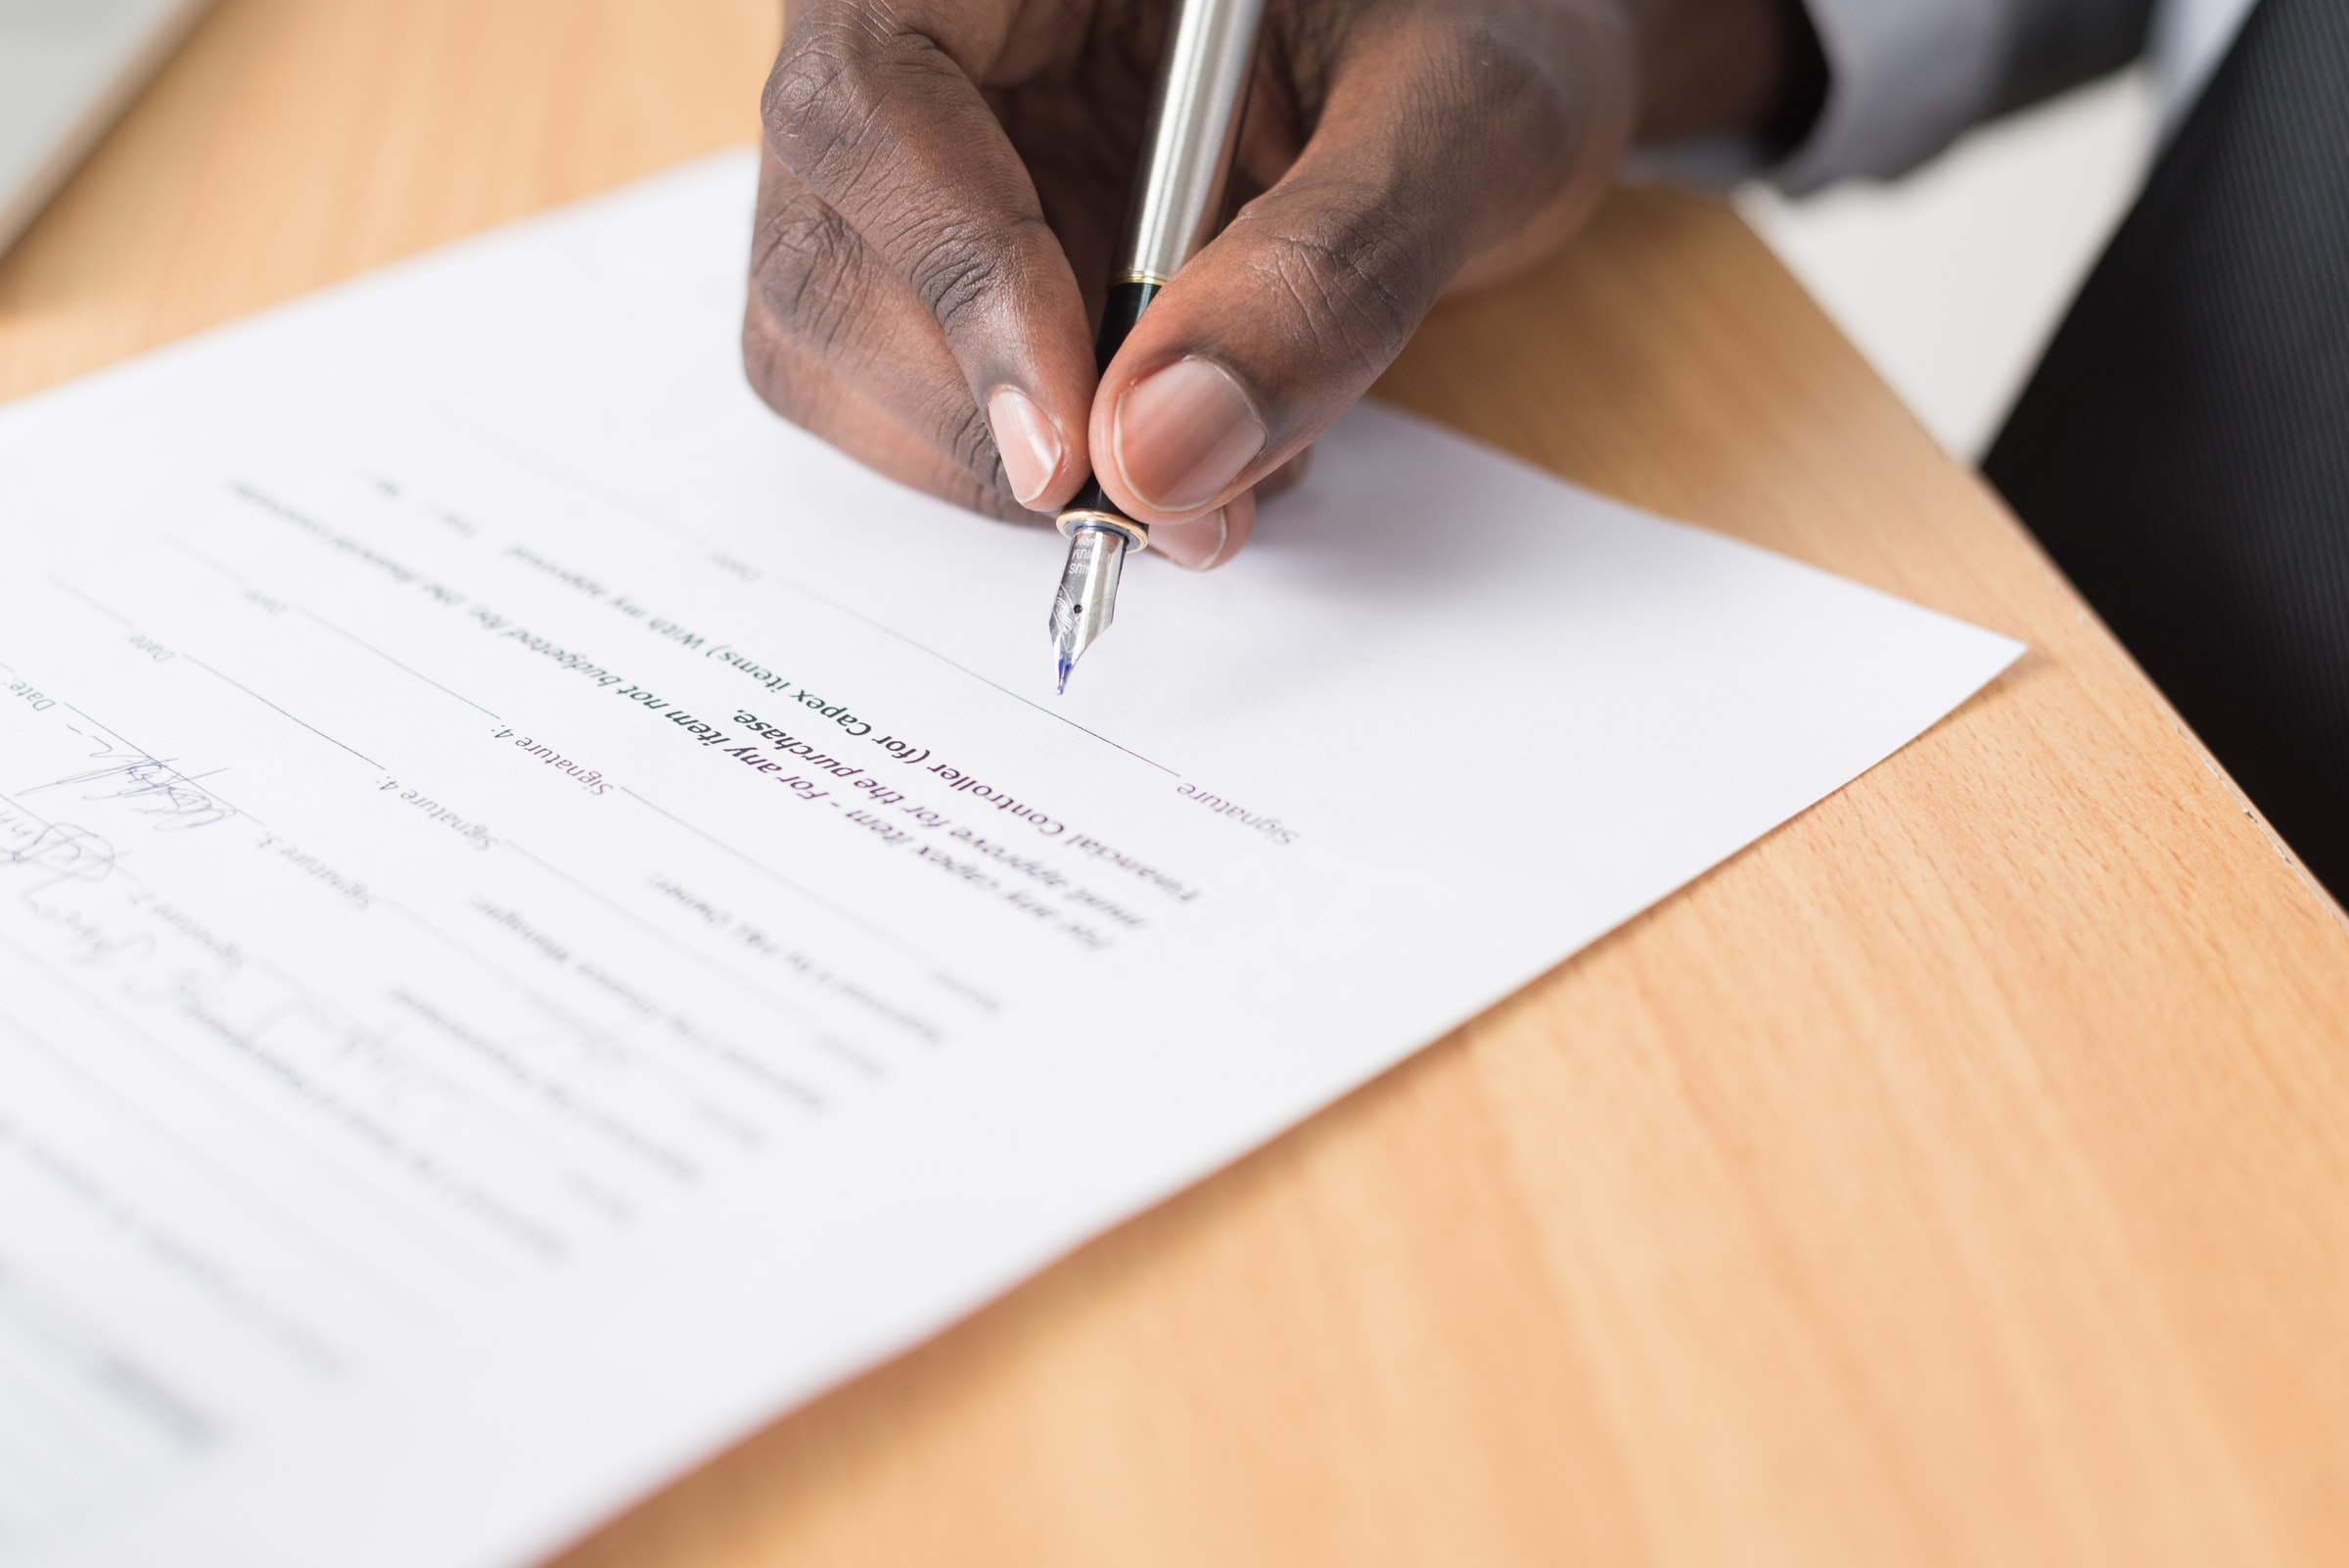 A person's hand signing a contract